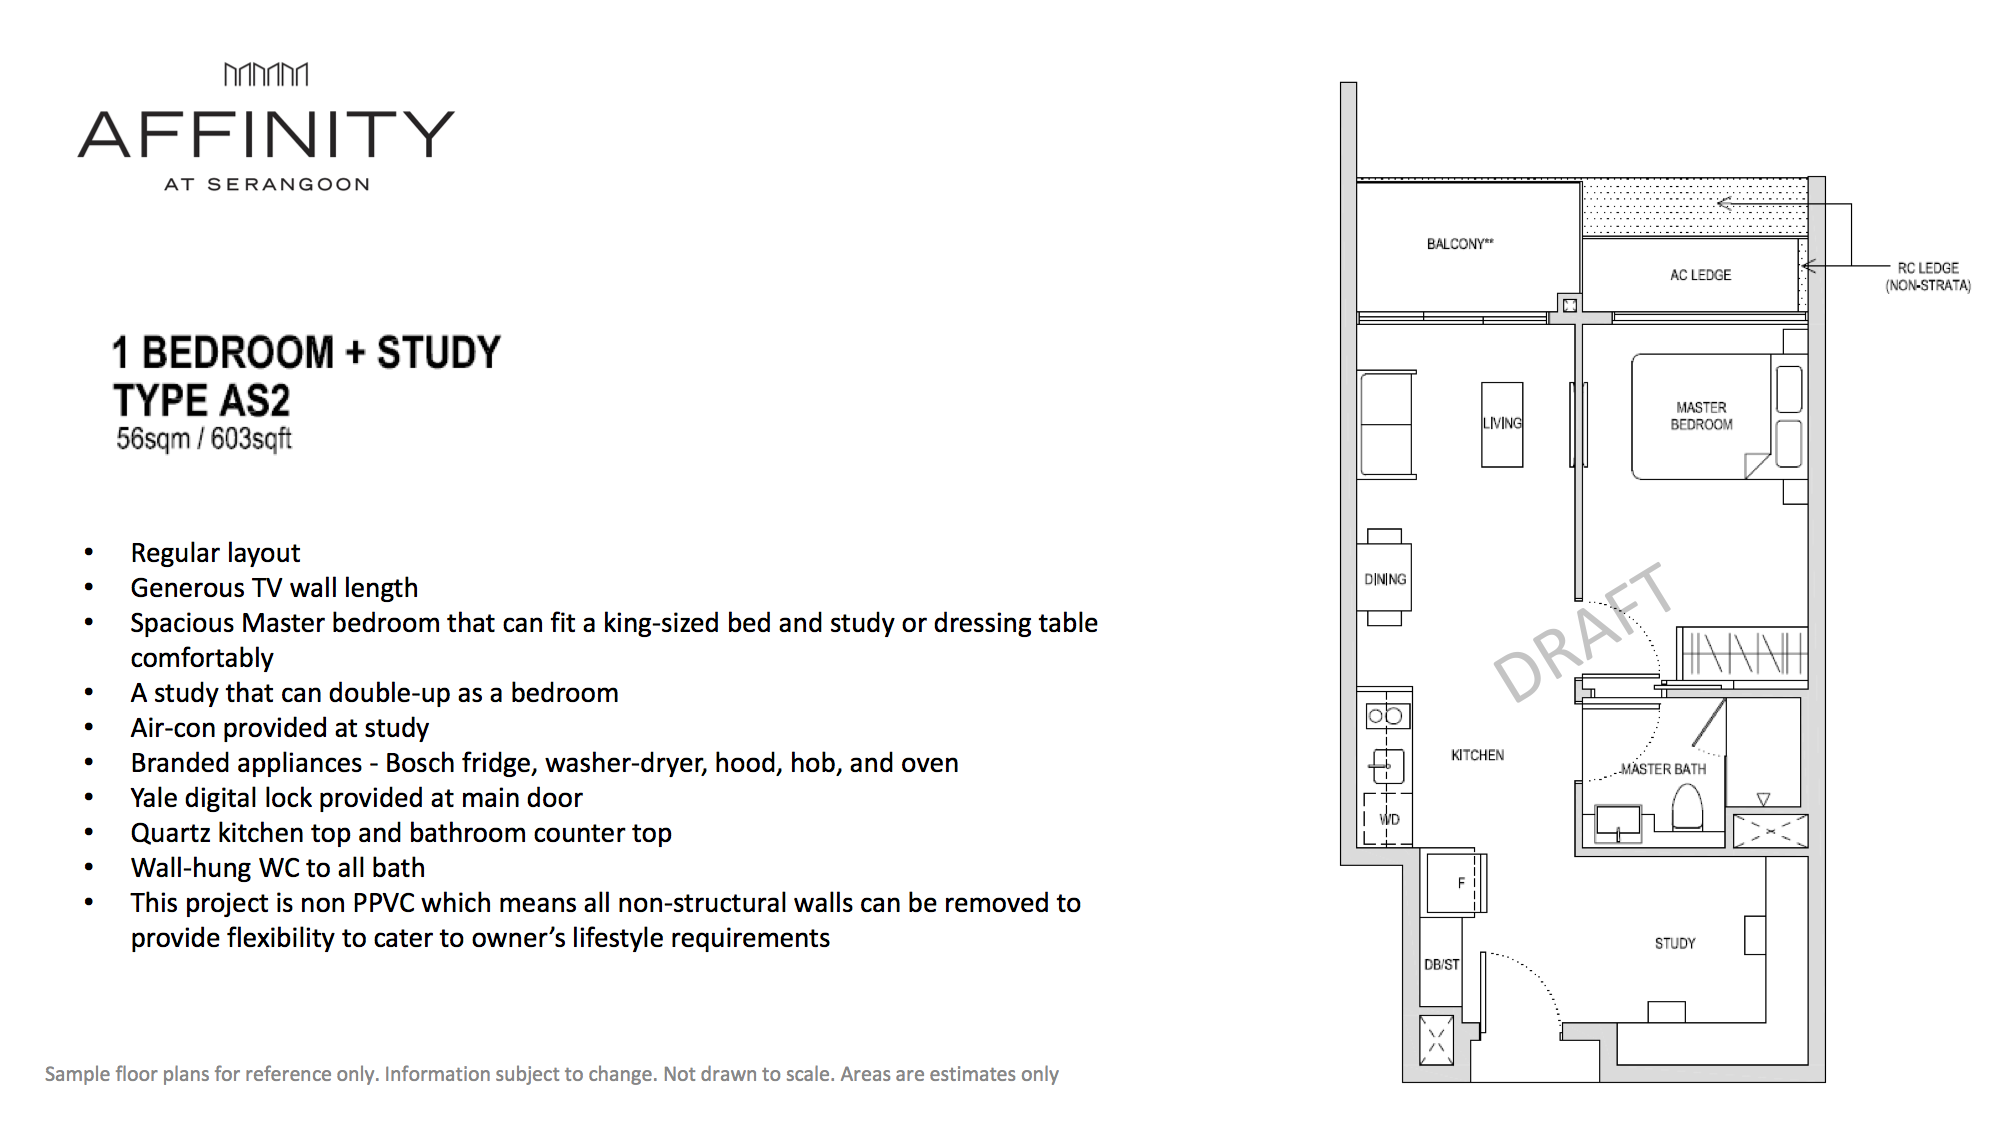 Affinity At Serangoon Floor Plan 1 Bedroom Study